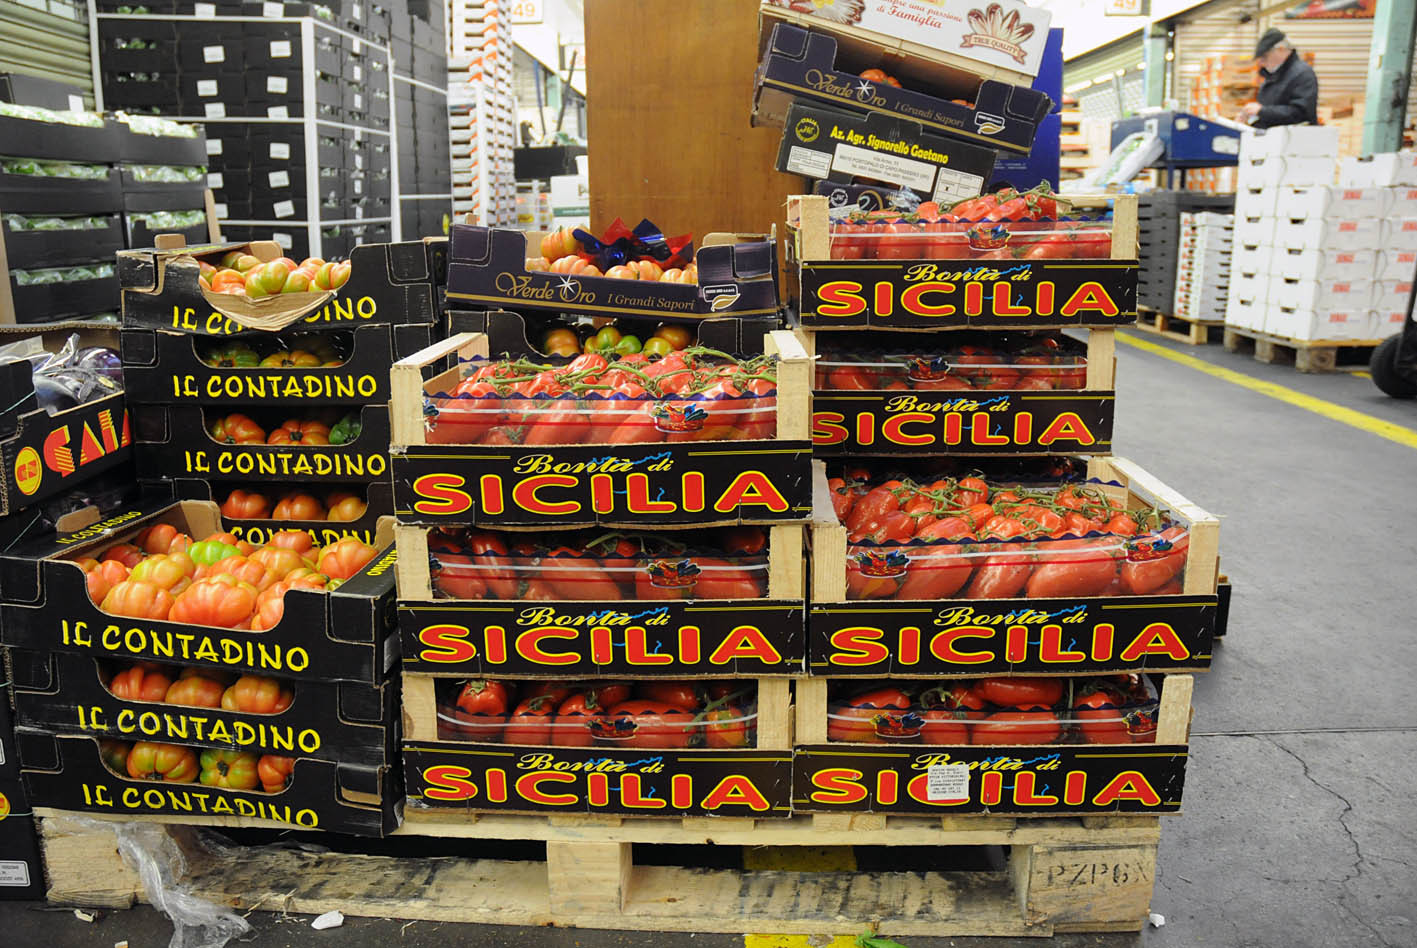 pallet-of-sicilian-tomatoes2.jpg?mtime=20170922143751#asset:11536